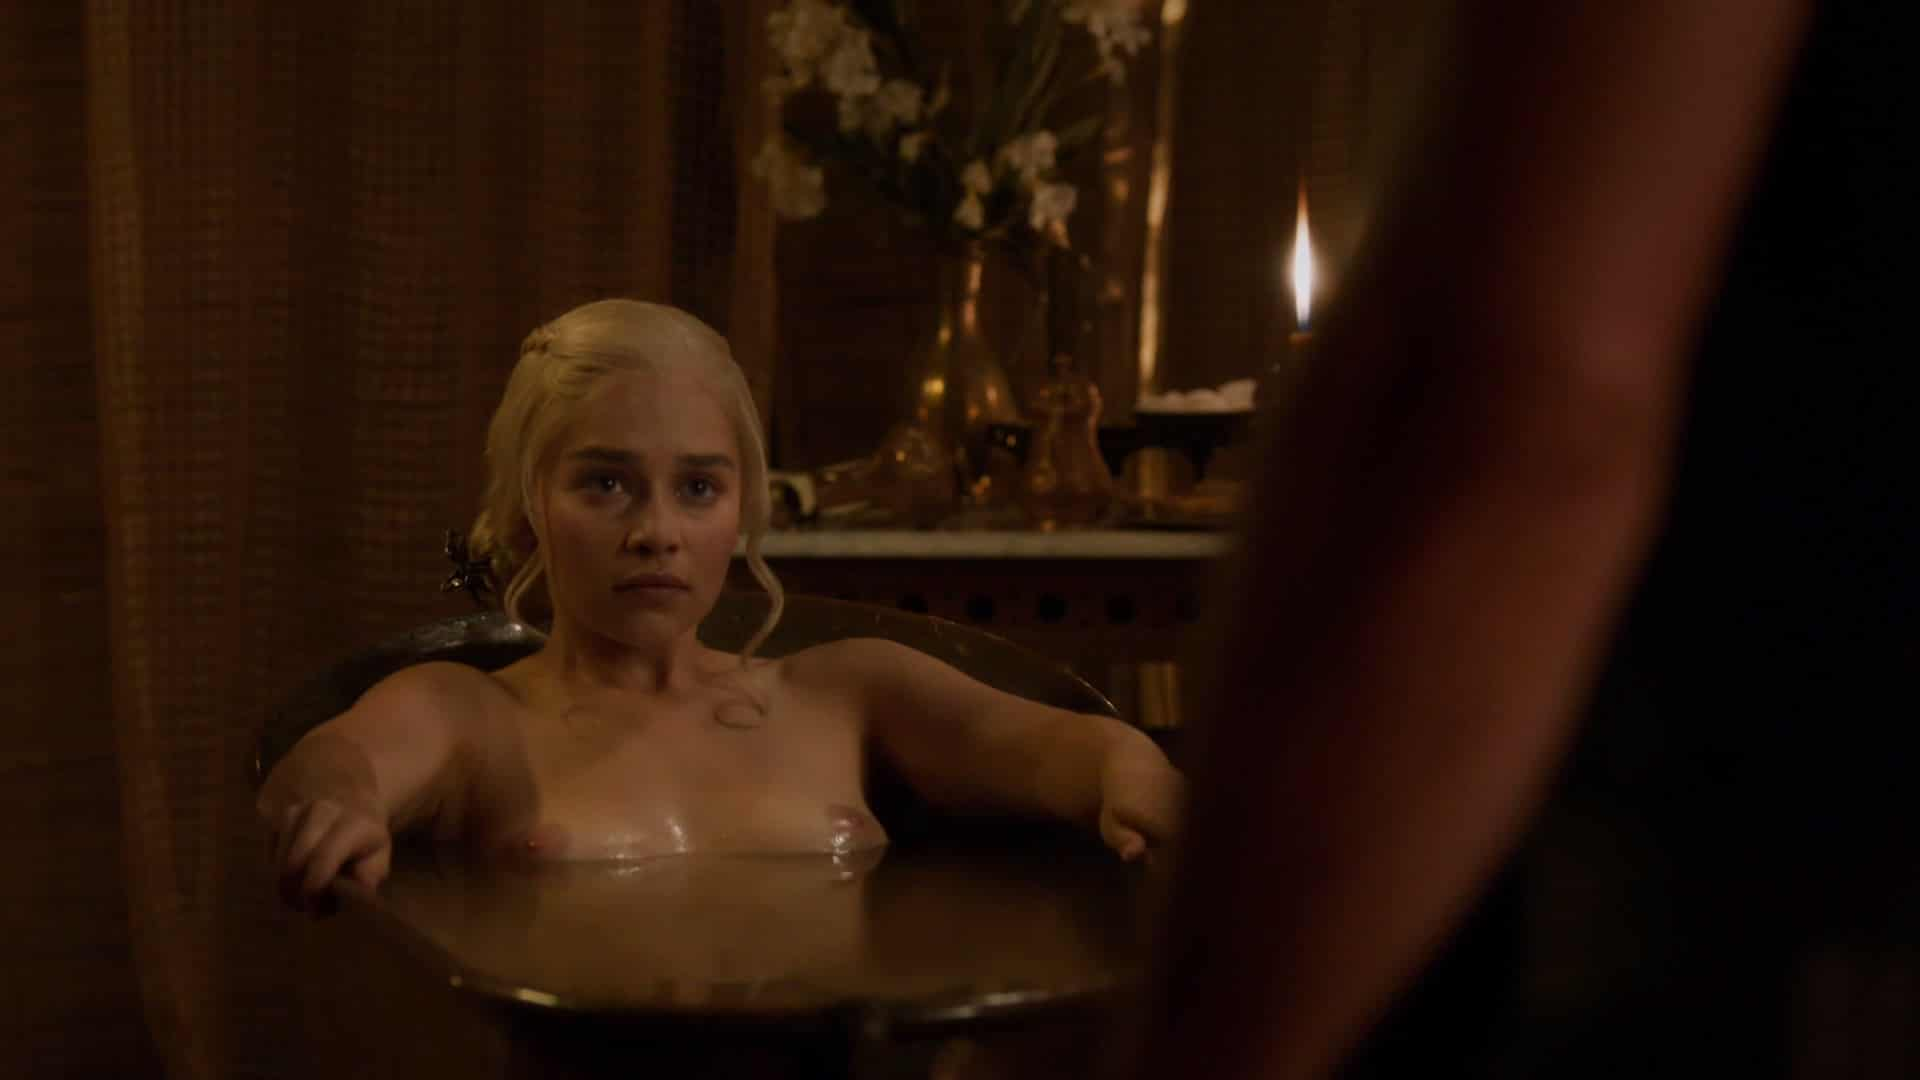 Emilia Clarke completely nude in bathtub nipples showing